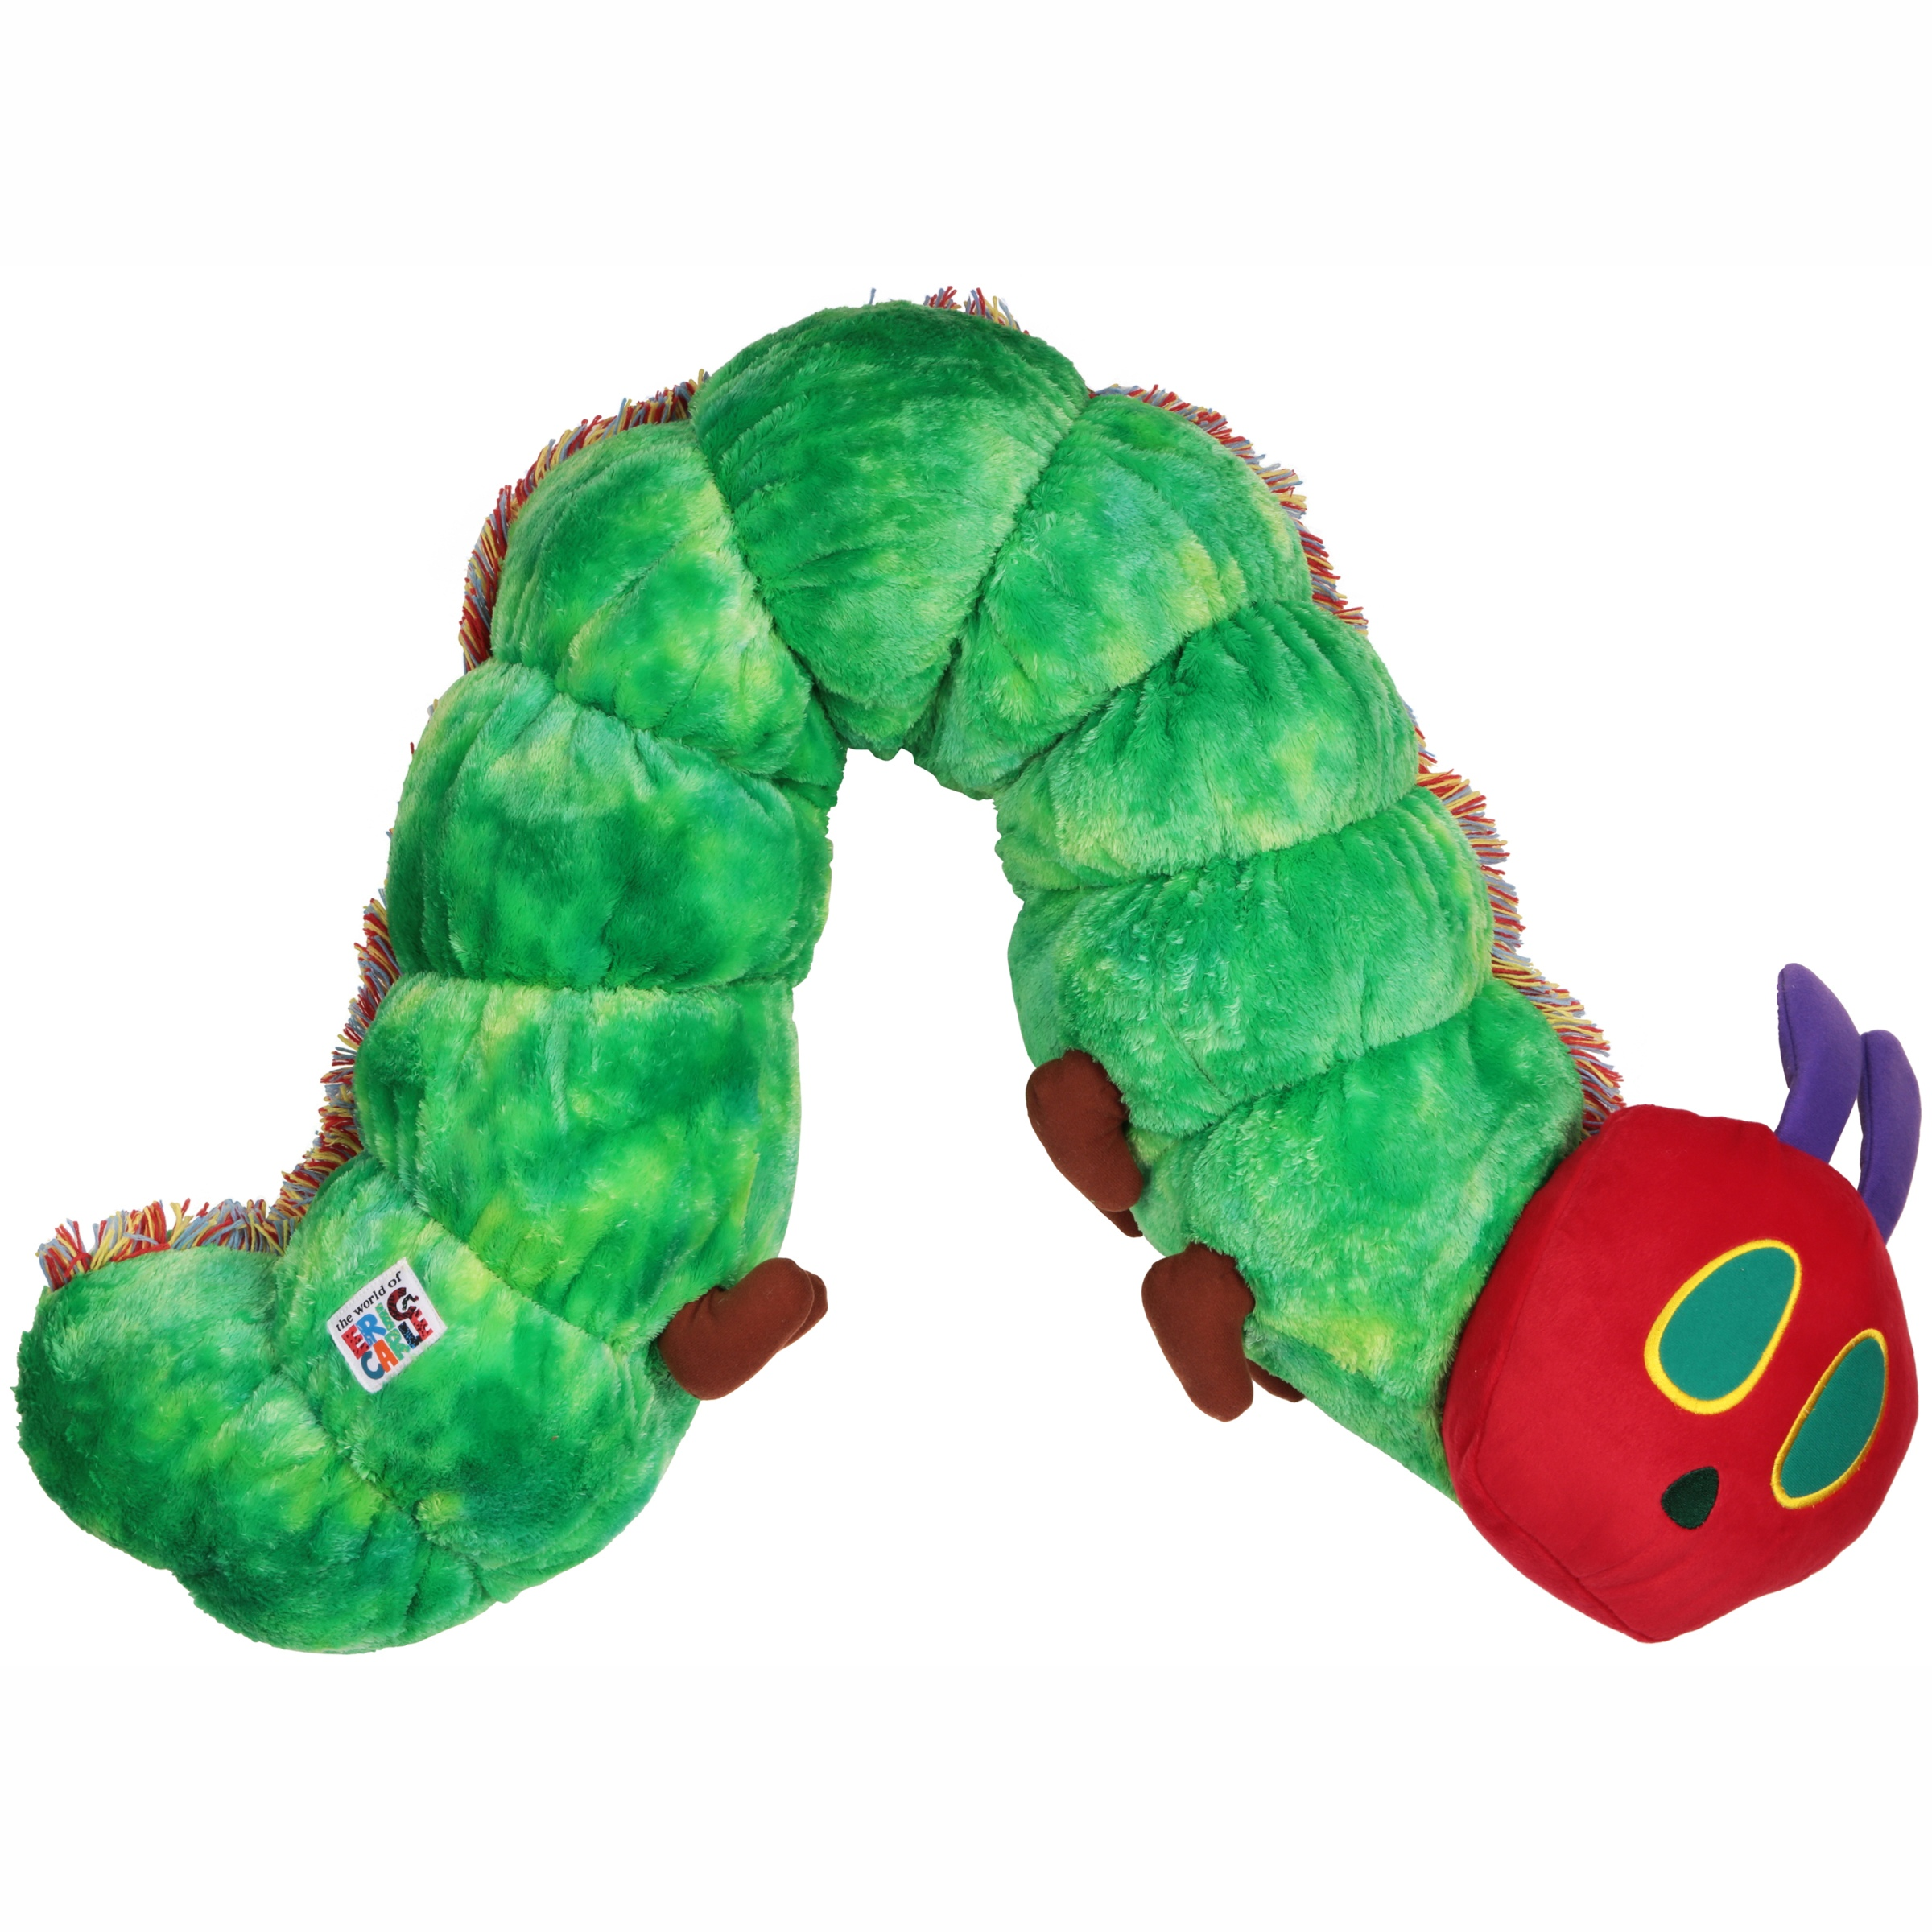 The World of Eric Carle™ The Very Hungry Caterpillar™ Play Time Caterpillar Toy